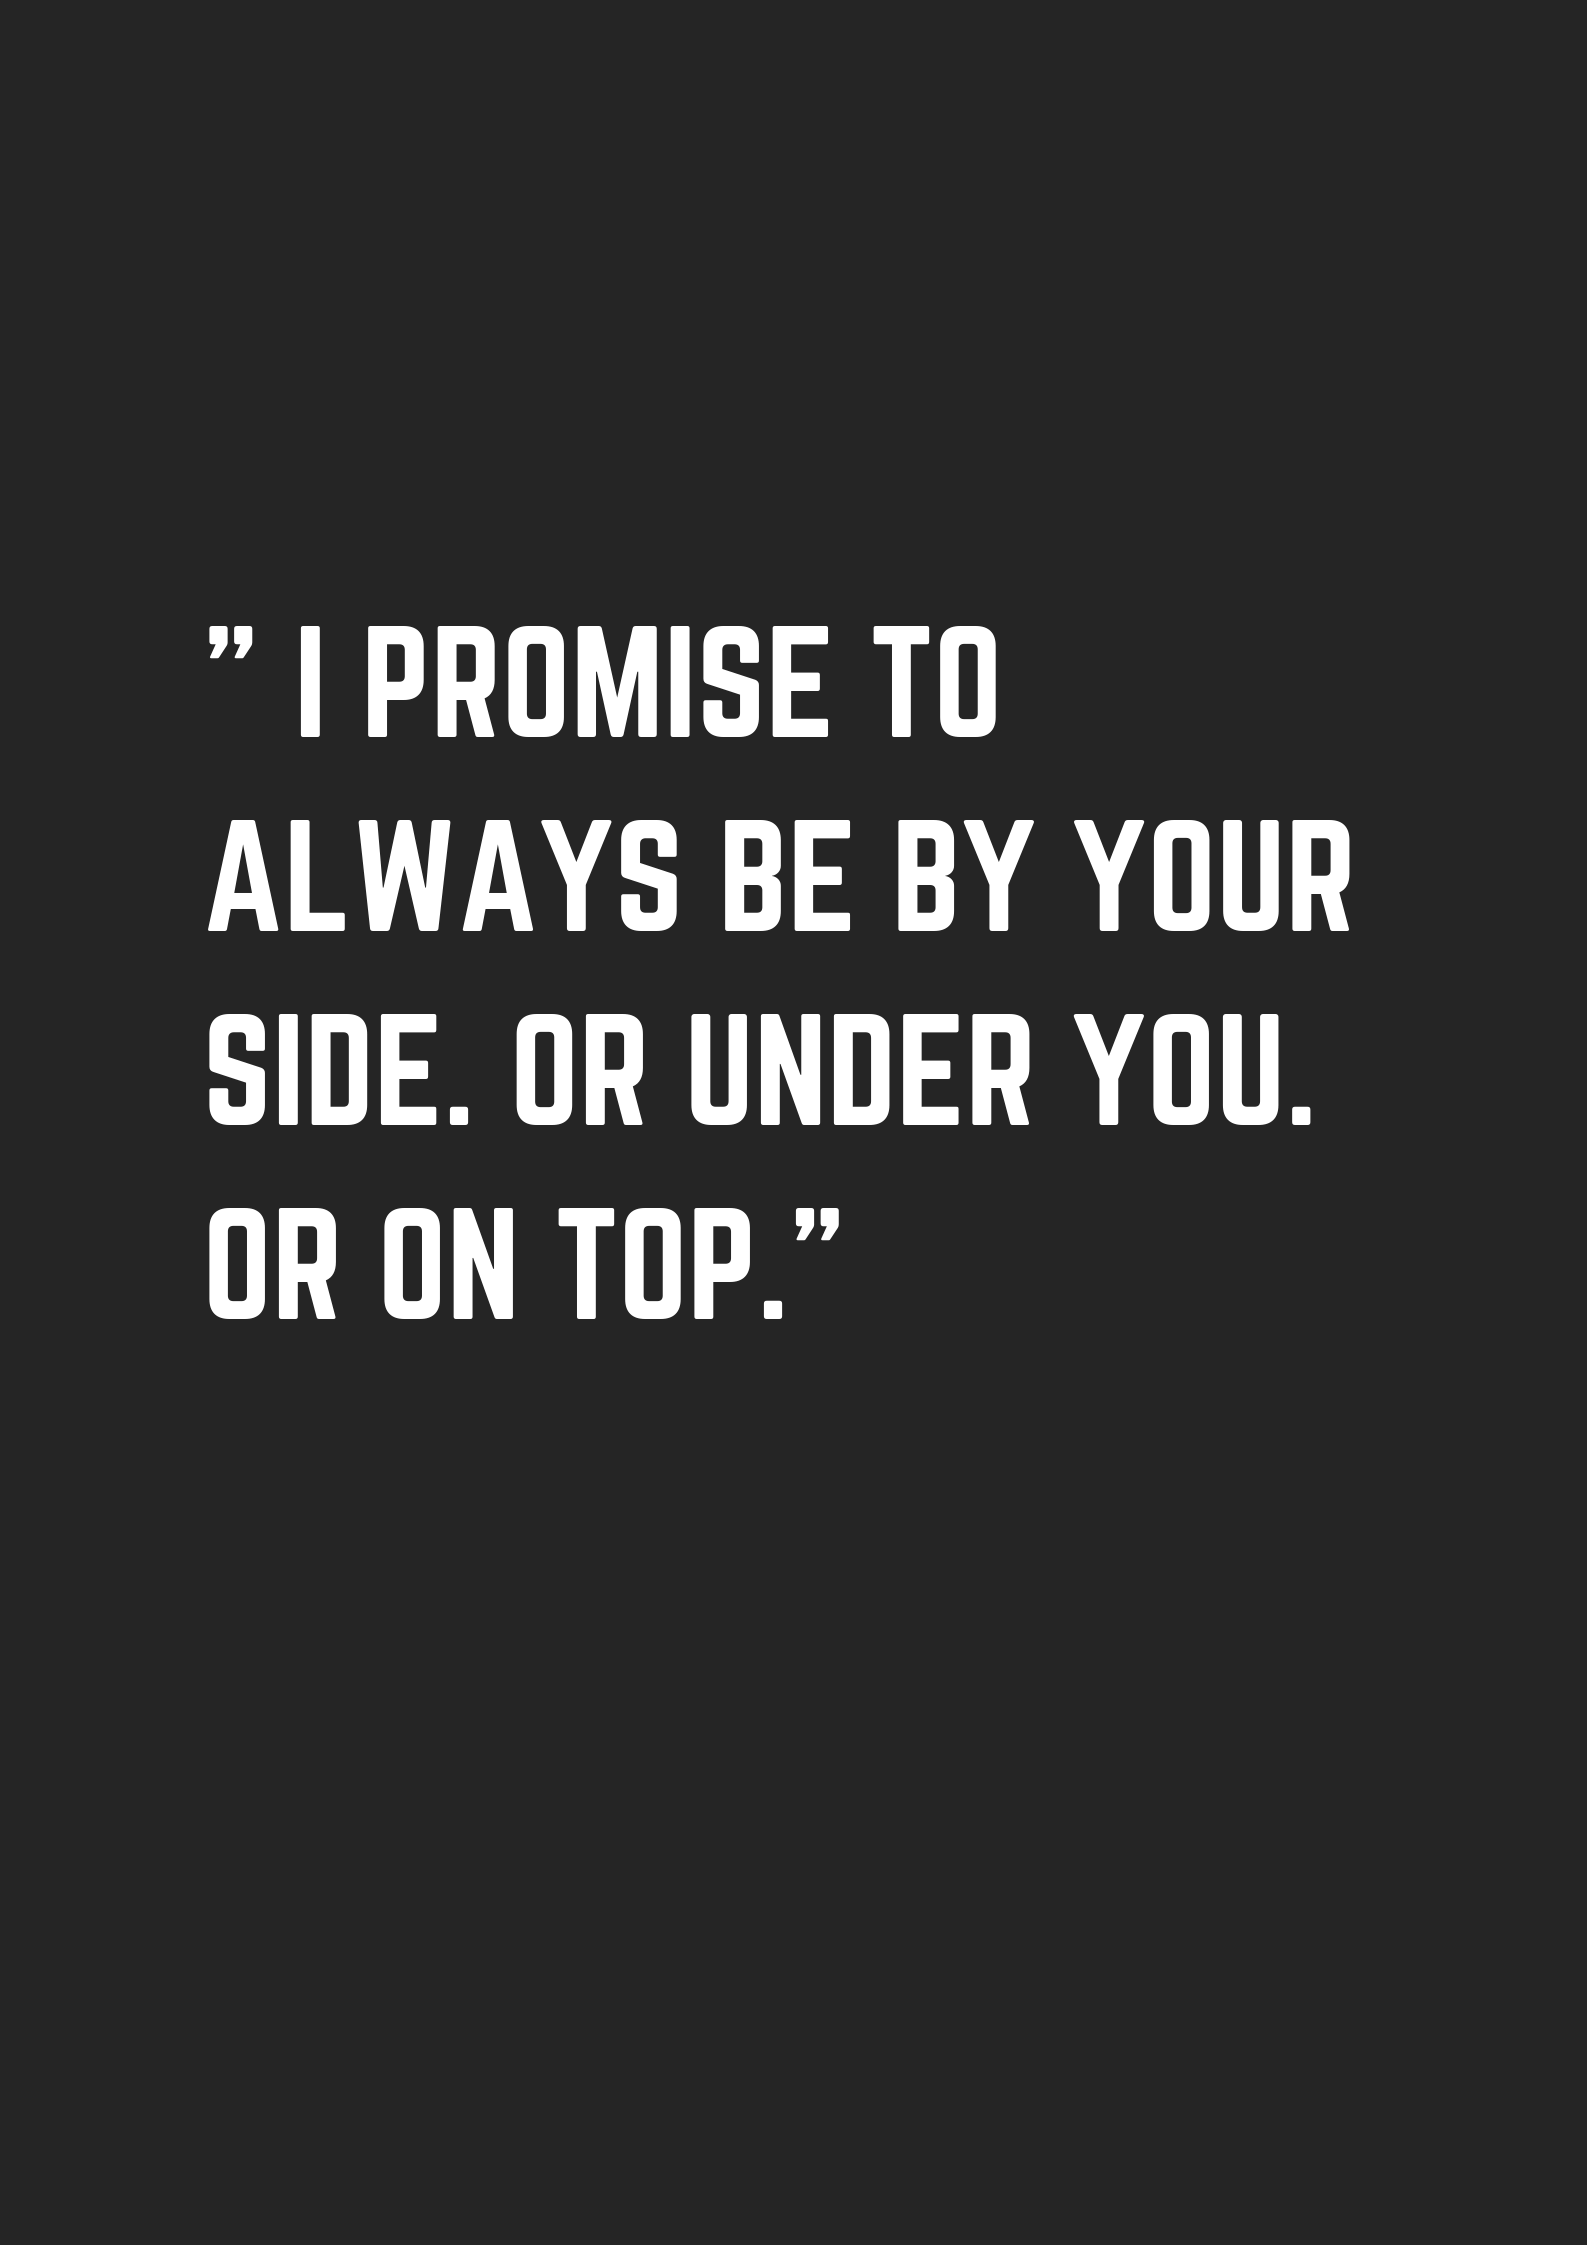 50 Flirty Sassy Quotes Sassy Quotes Love Quotes Funny Flirty Quotes